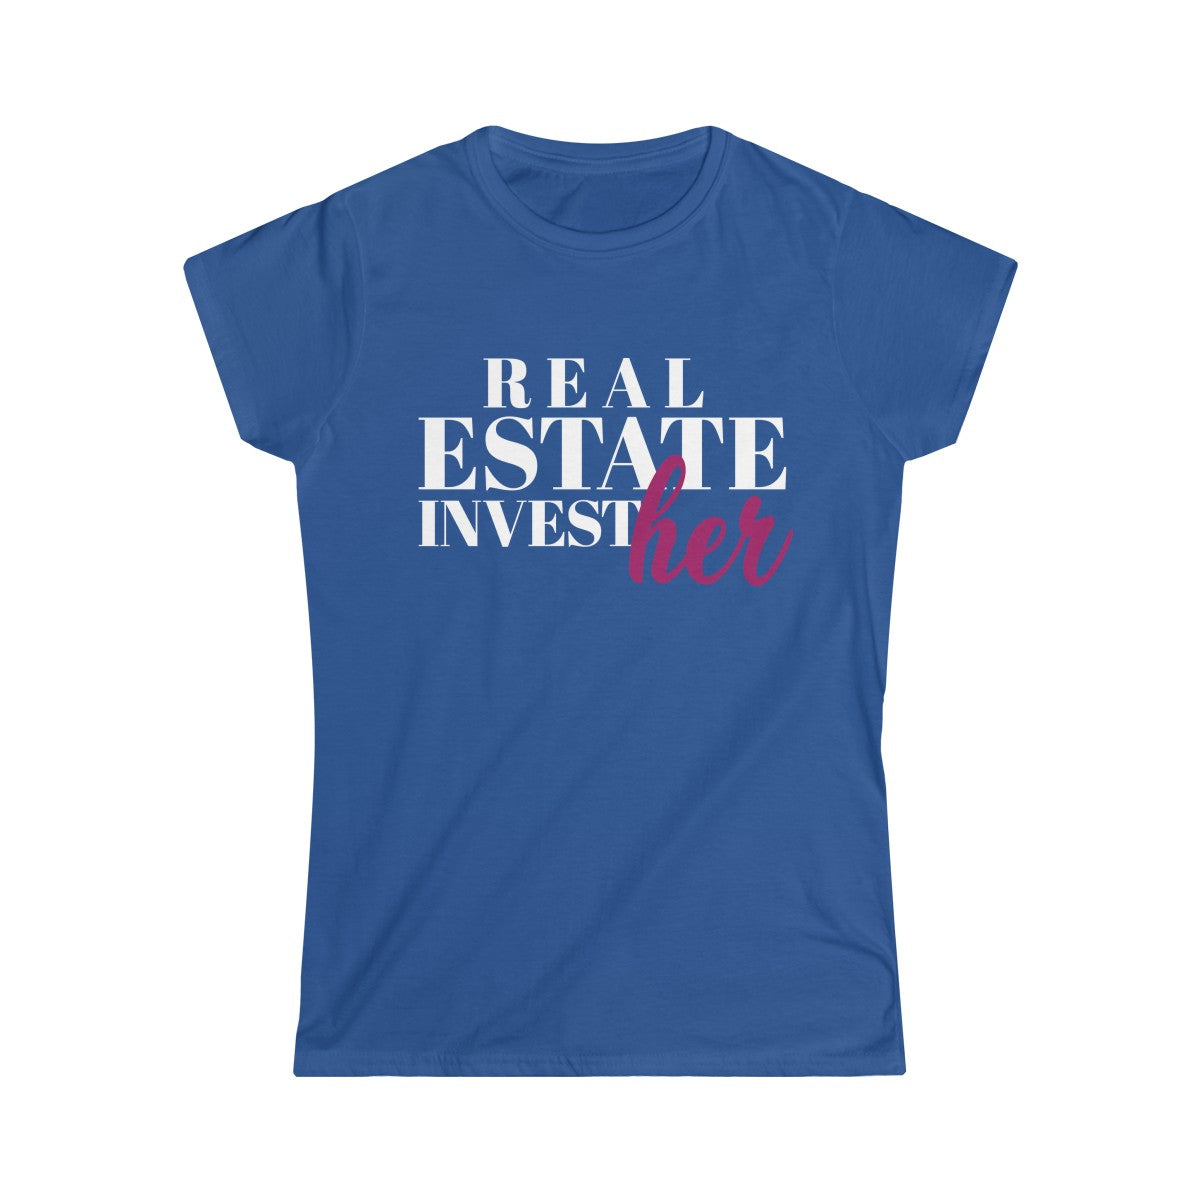 Real Estate InvestHer Women's Softstyle Tee